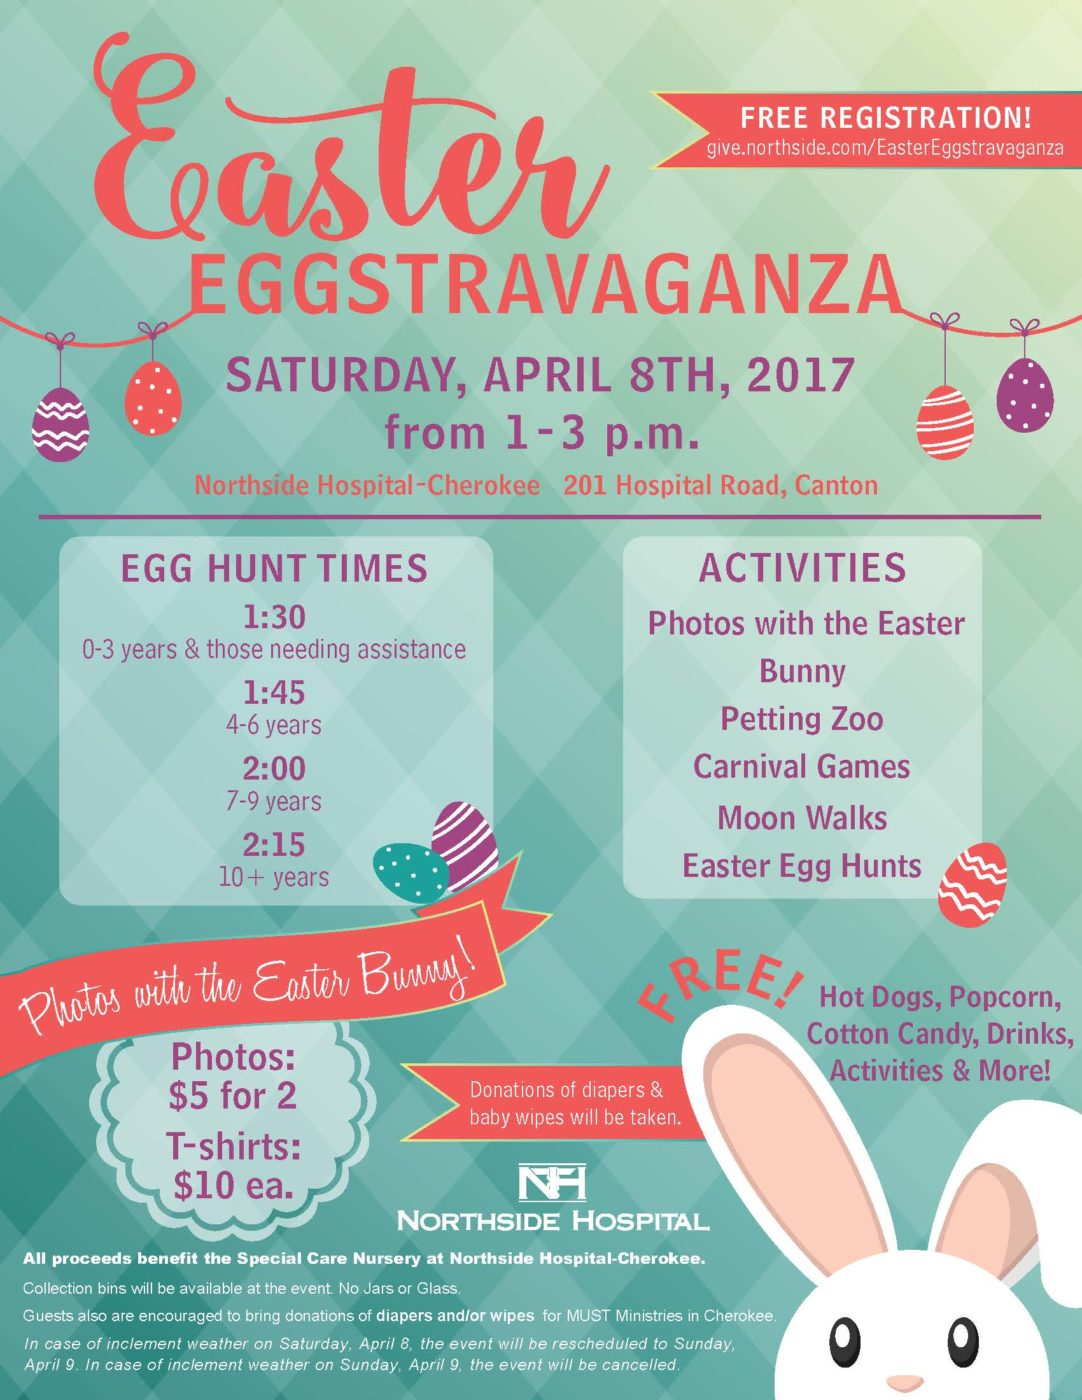 Northside Hospital's Easter Eggstravaganza - Satruday, April 8, 2017